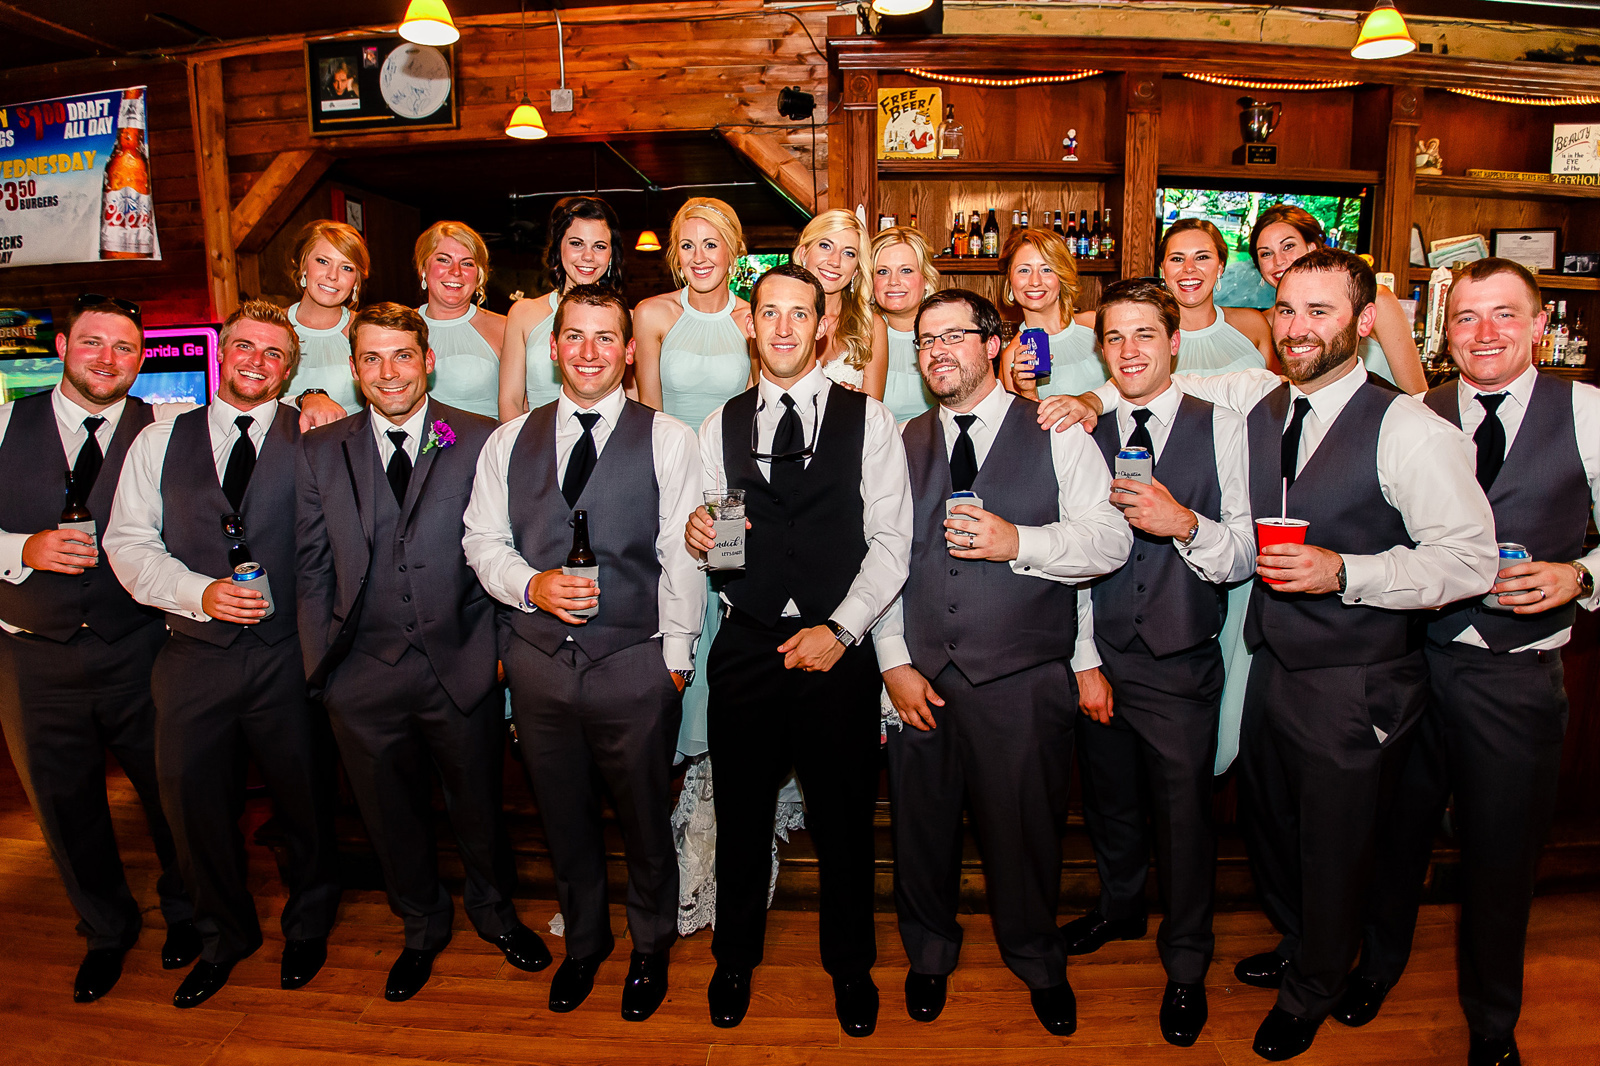 The West End in Millstadt Wedding Party Photos with St. Louis Wedding Photographers by Oldani Photography 4.jpg